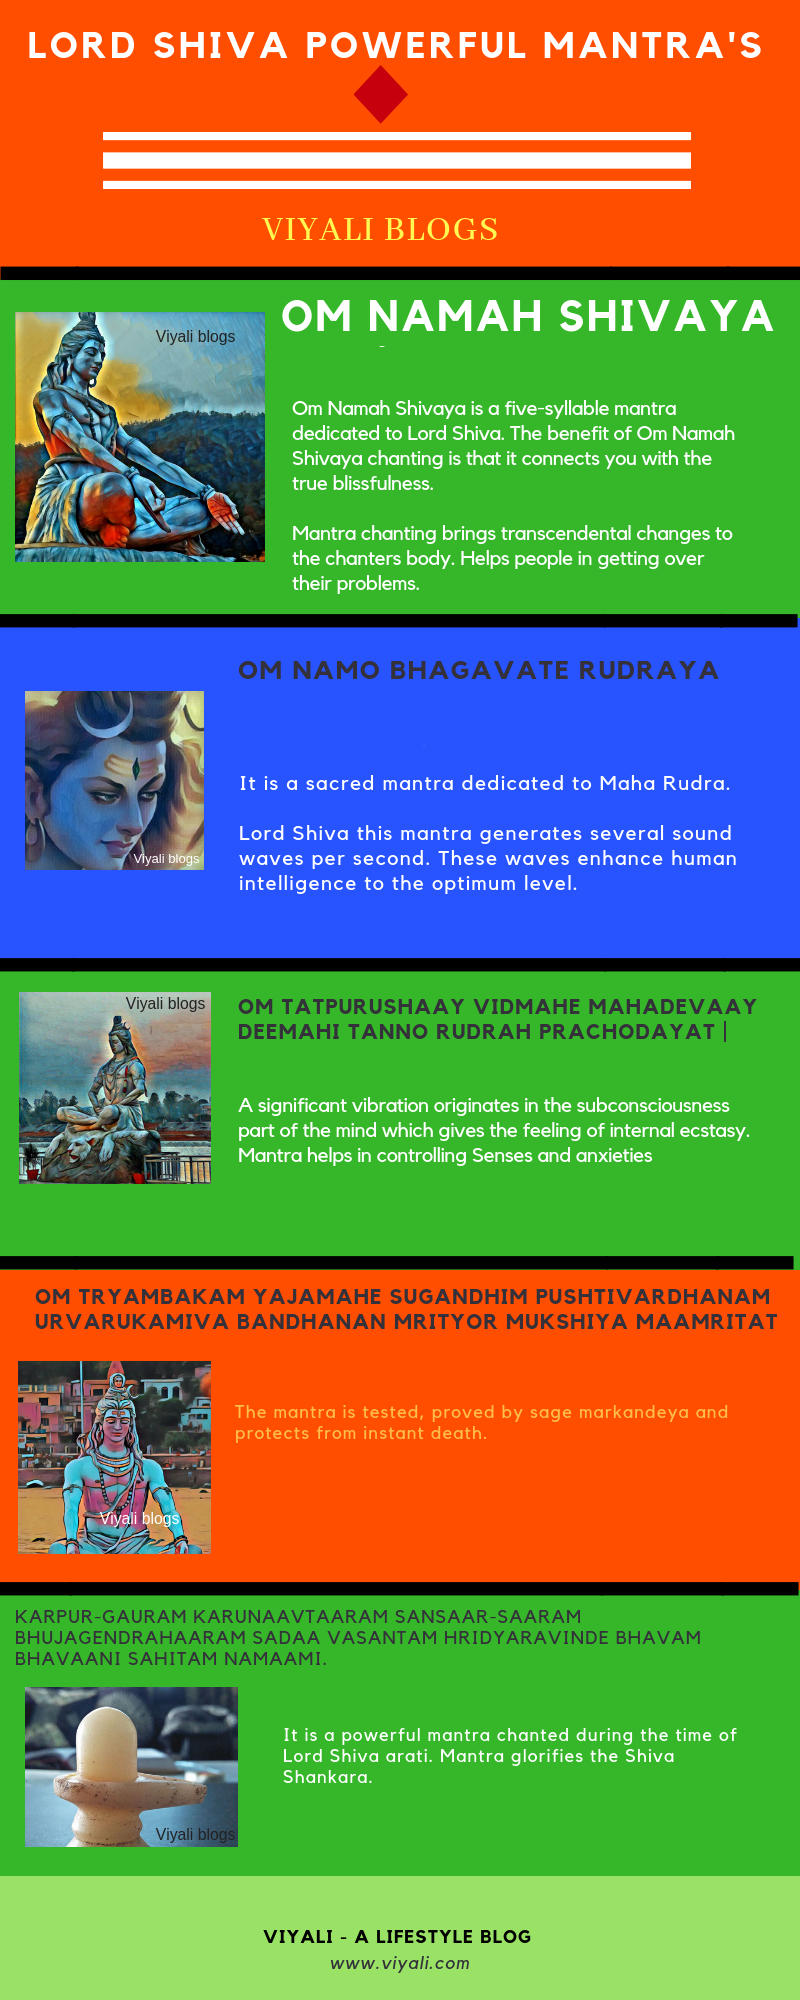 Lord shiva powerful mantra